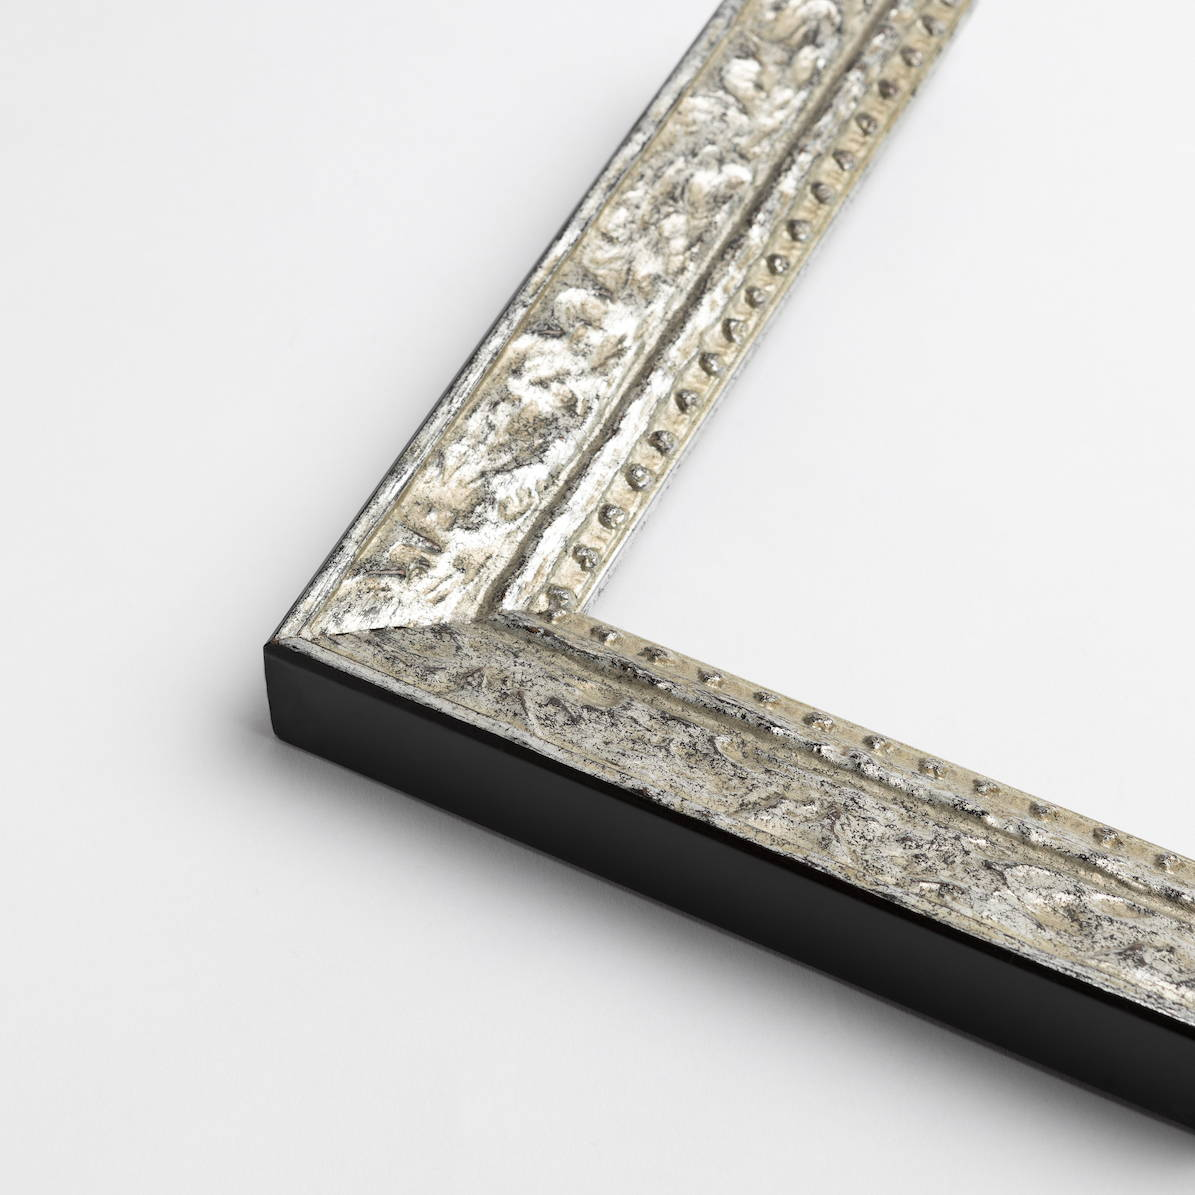 TV-Mirror Patterned Silver Frame by FRAMING TO A T